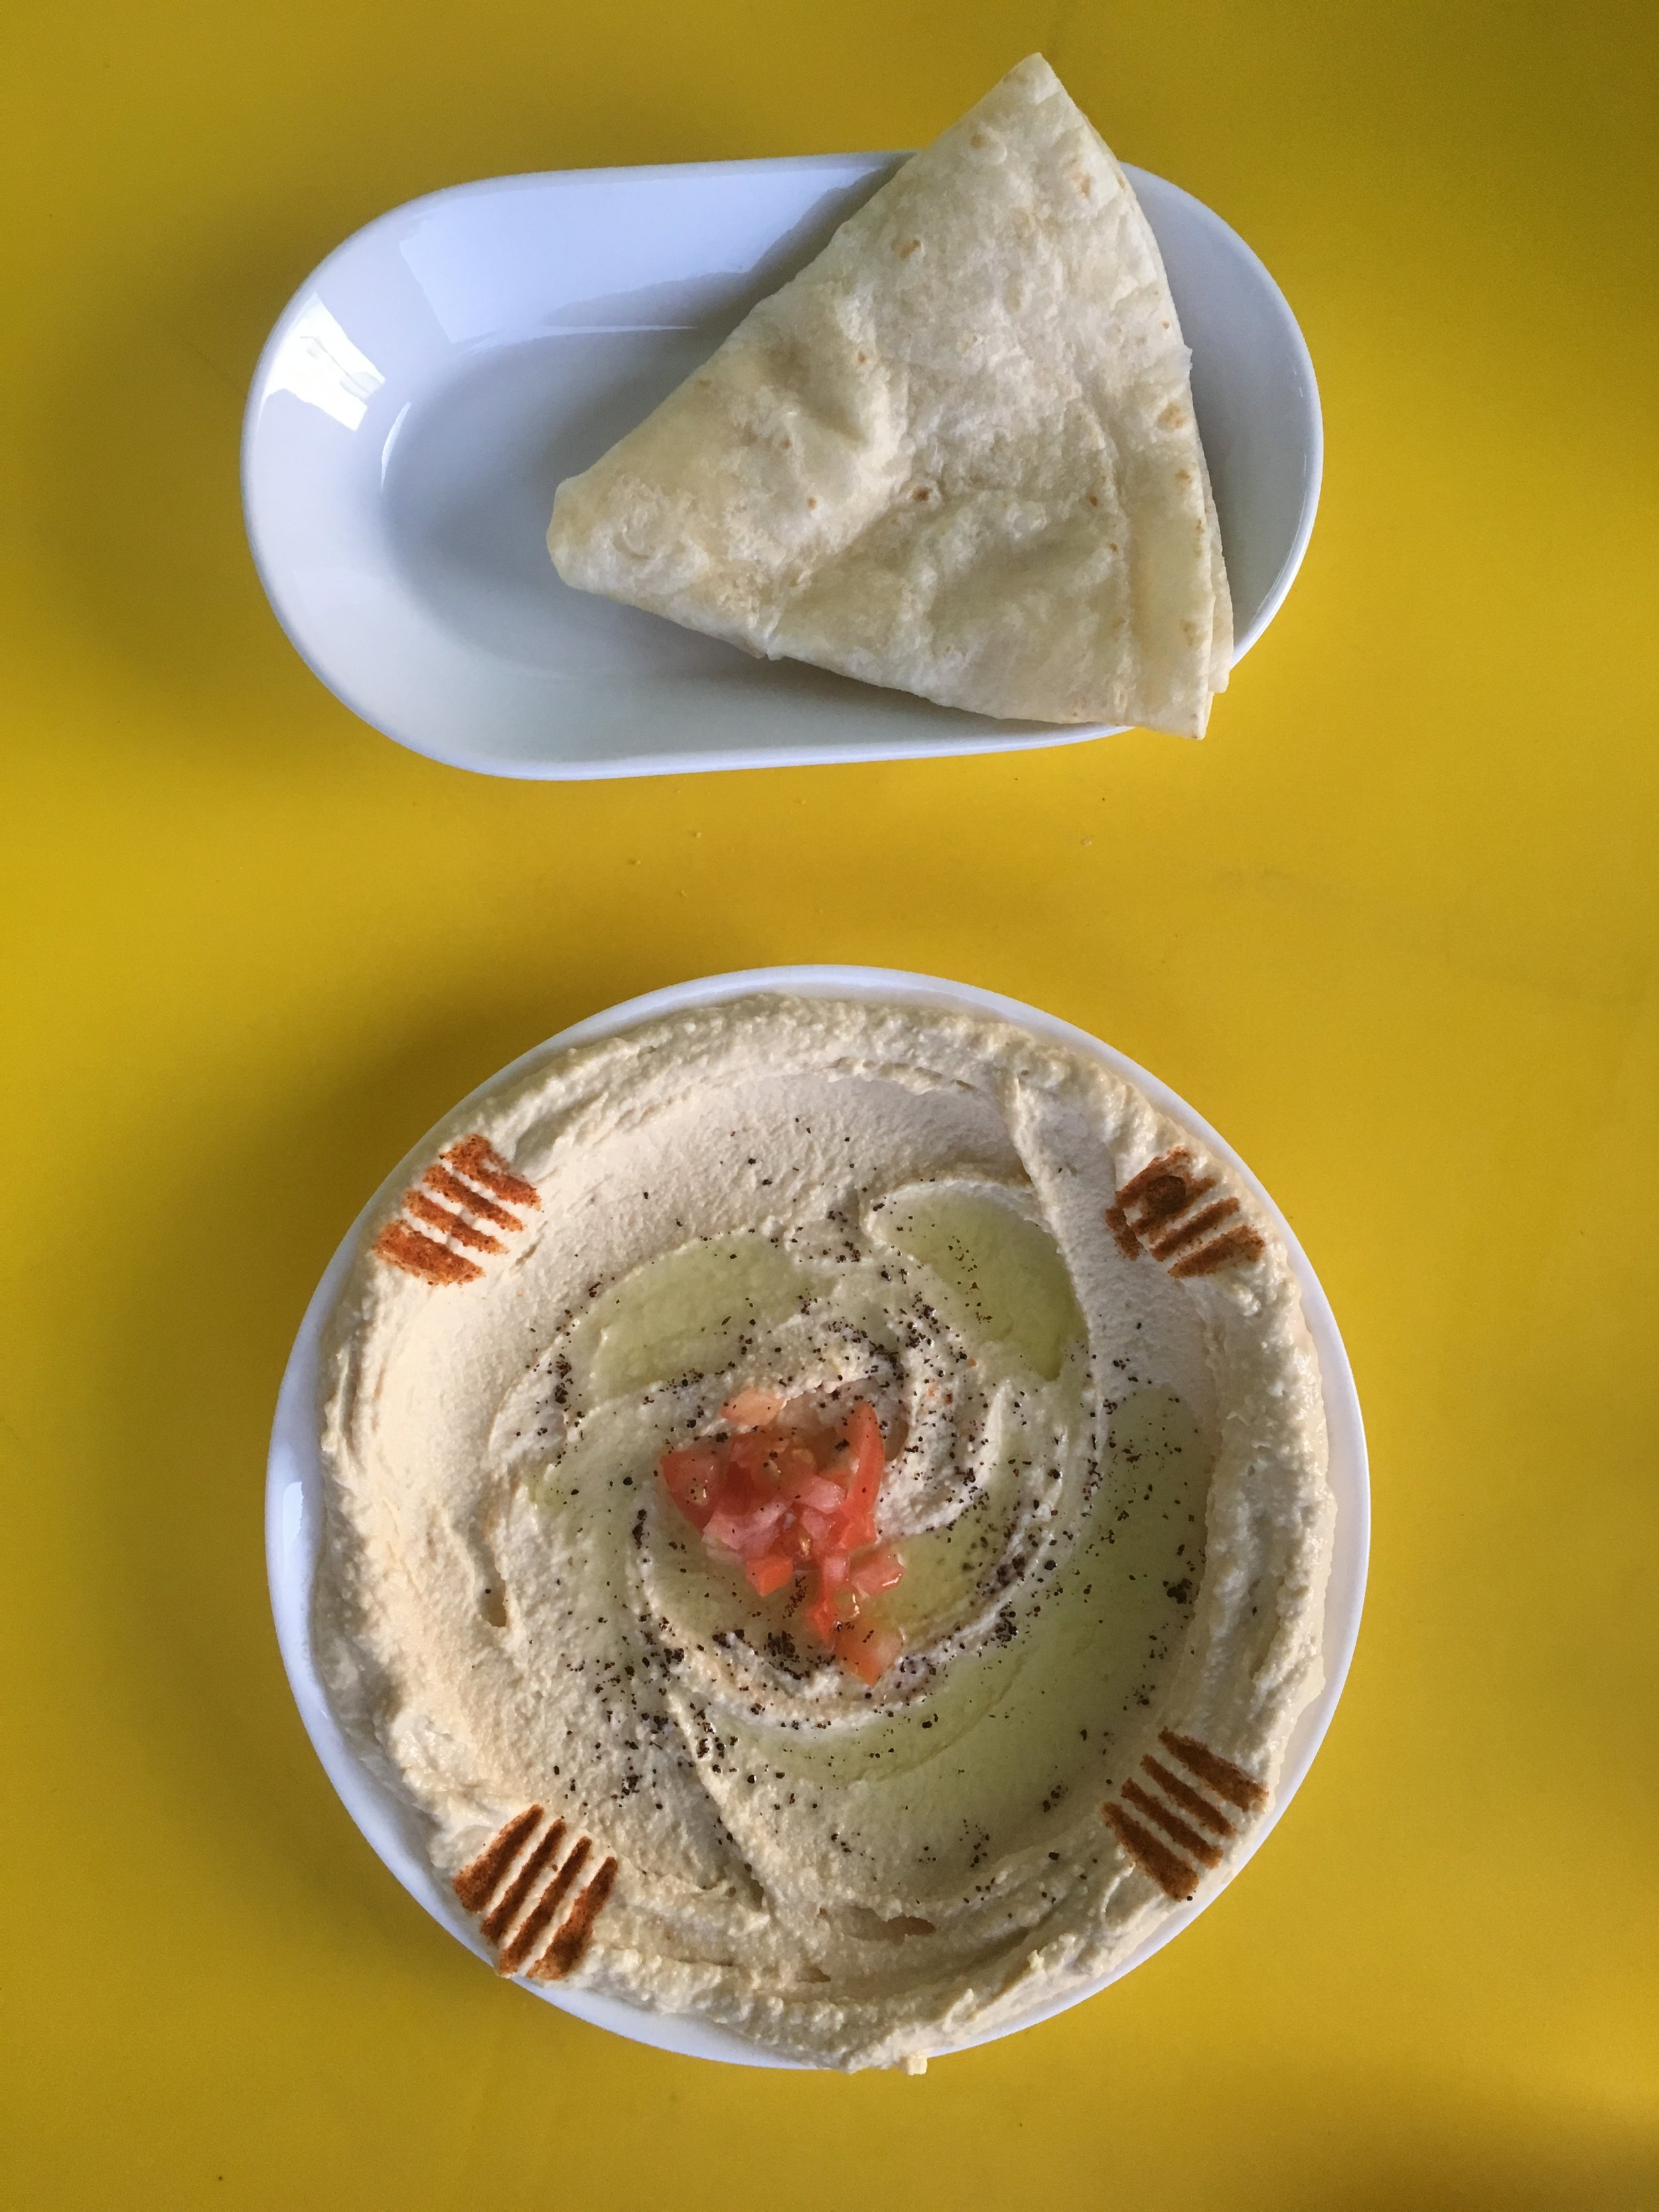 You can't go to an Middle Eastern restaurant and not have Hummus.